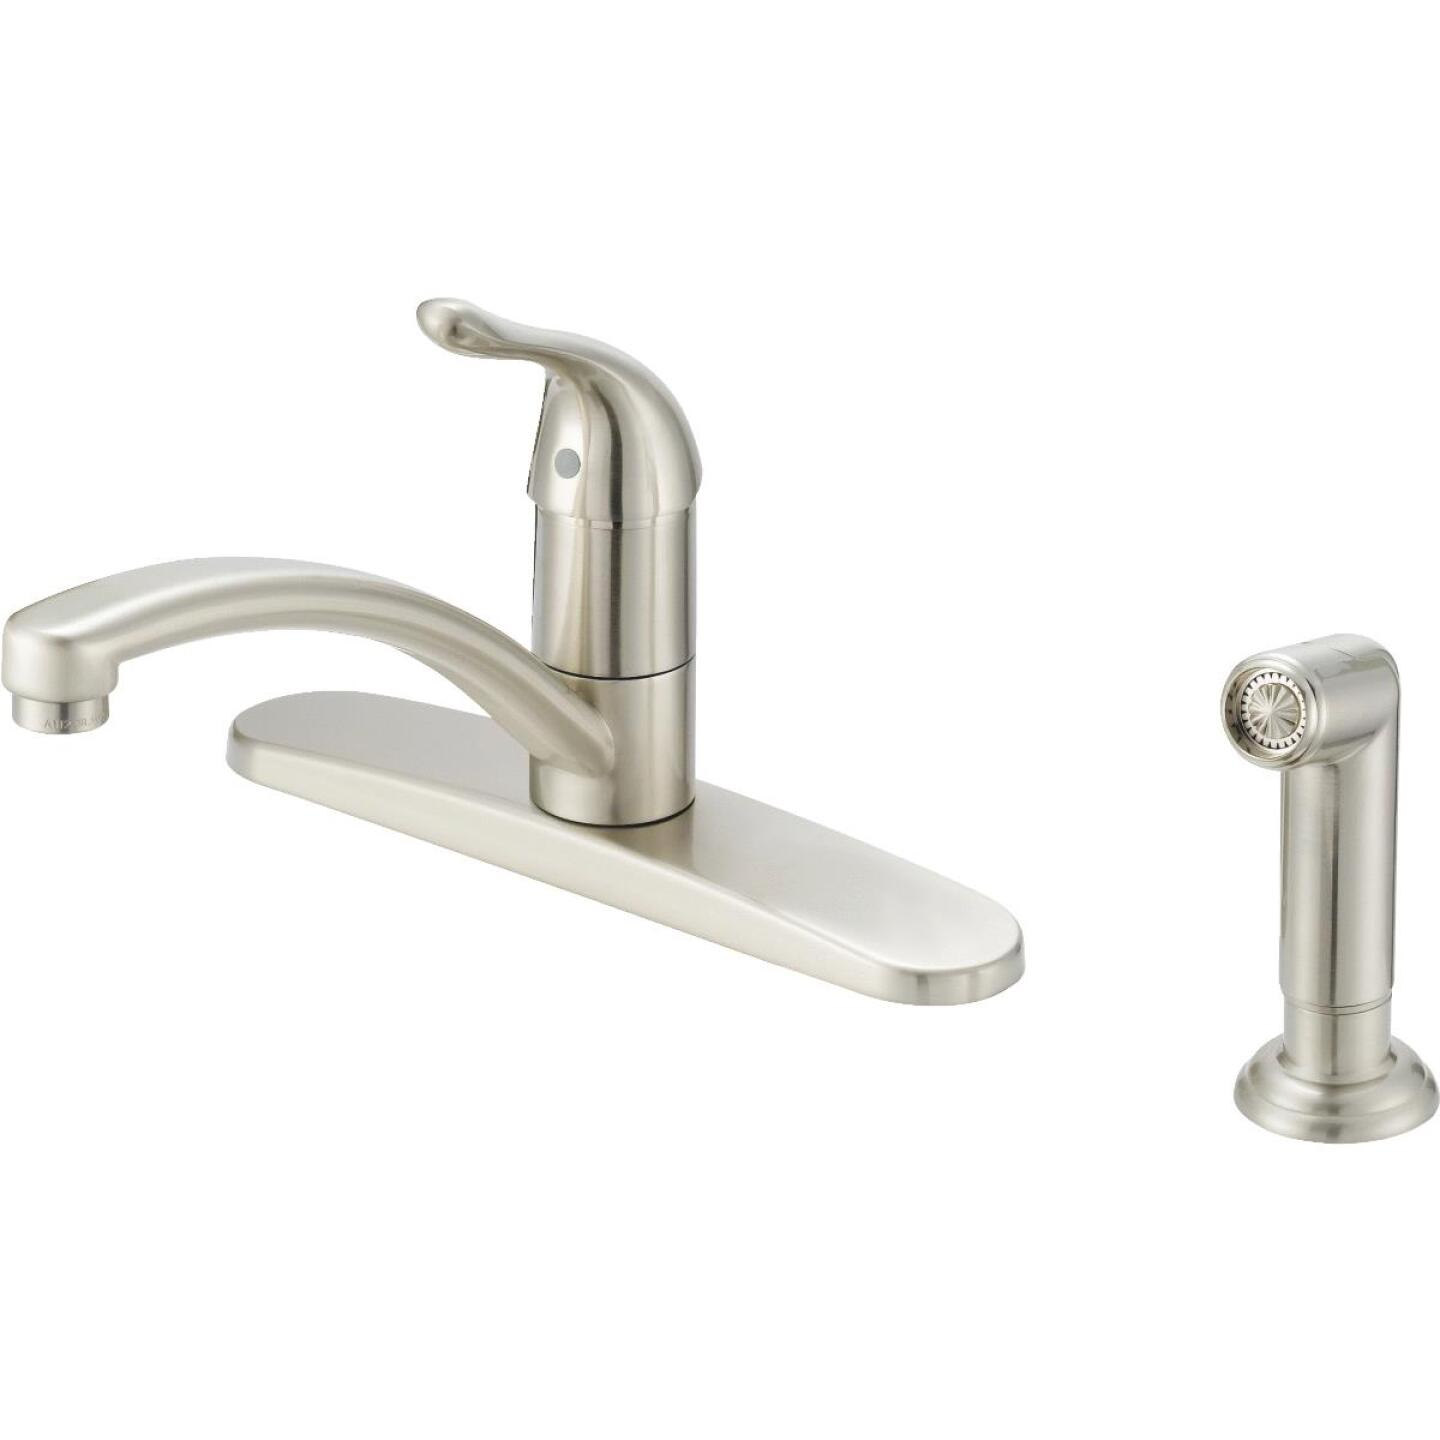 Home Impressions Single Handle Lever Kitchen Faucet with Side Spray, Brushed Nickel Image 1